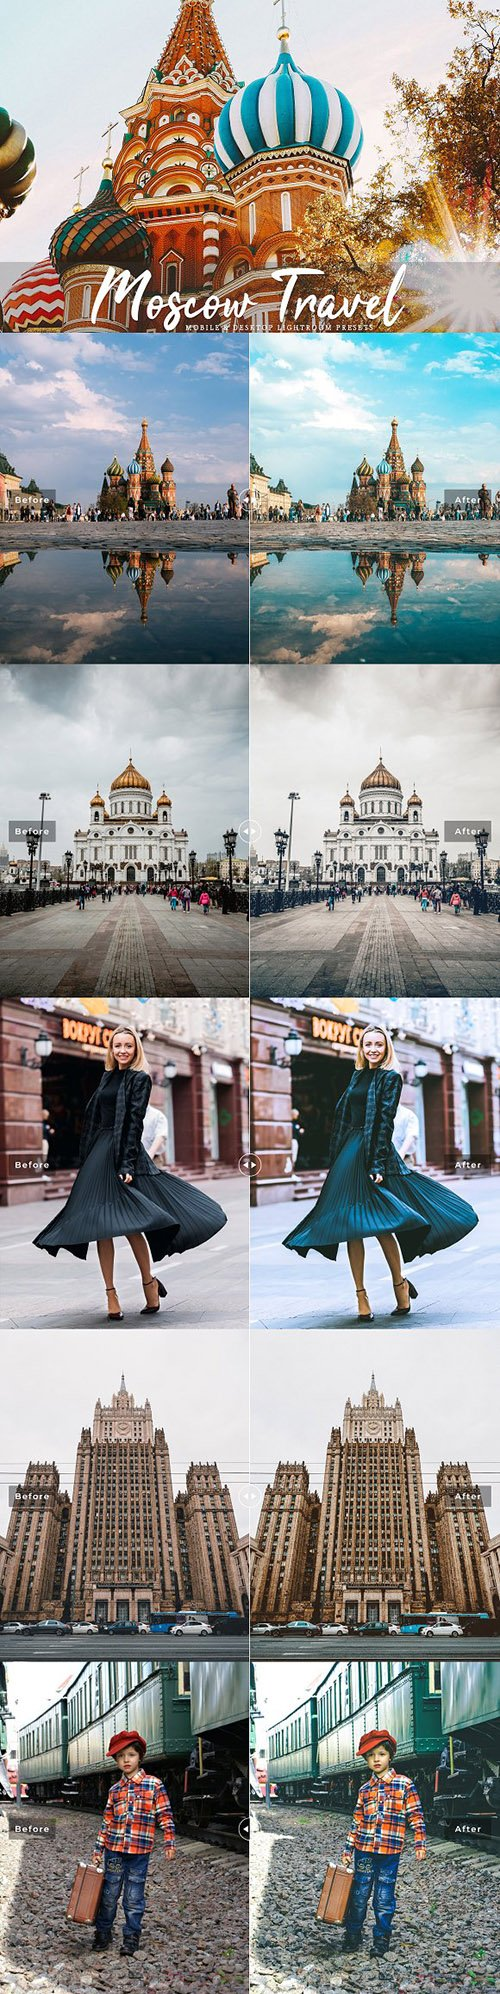 Moscow Travel Lightroom Presets 3504351